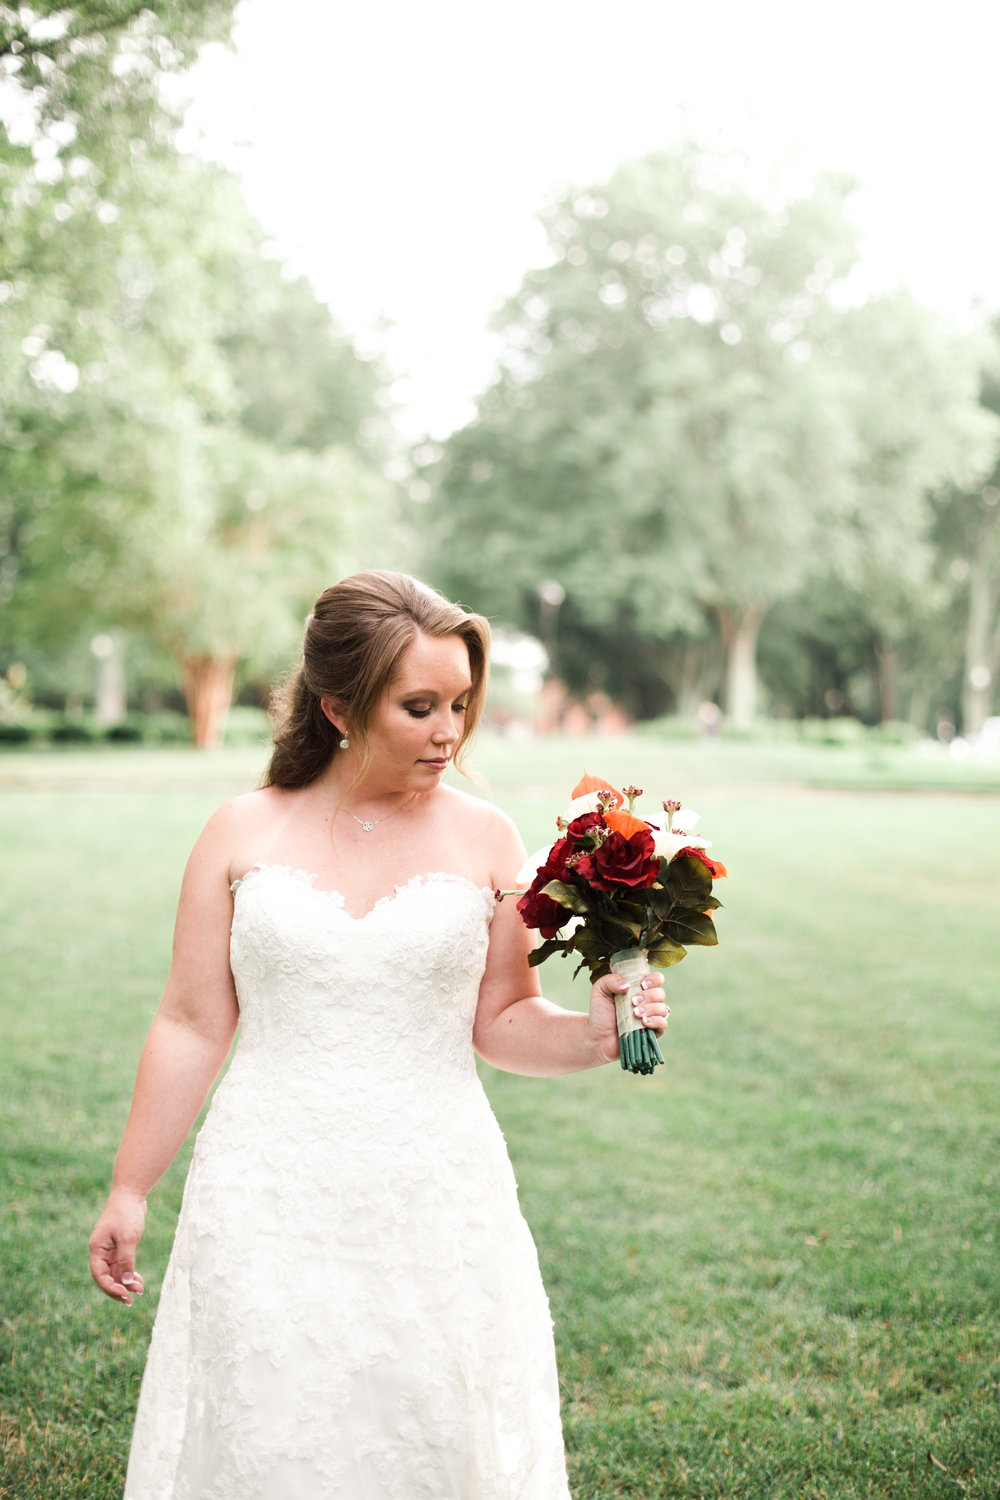 gabbie_bridal_poured_out_photography-30.jpg